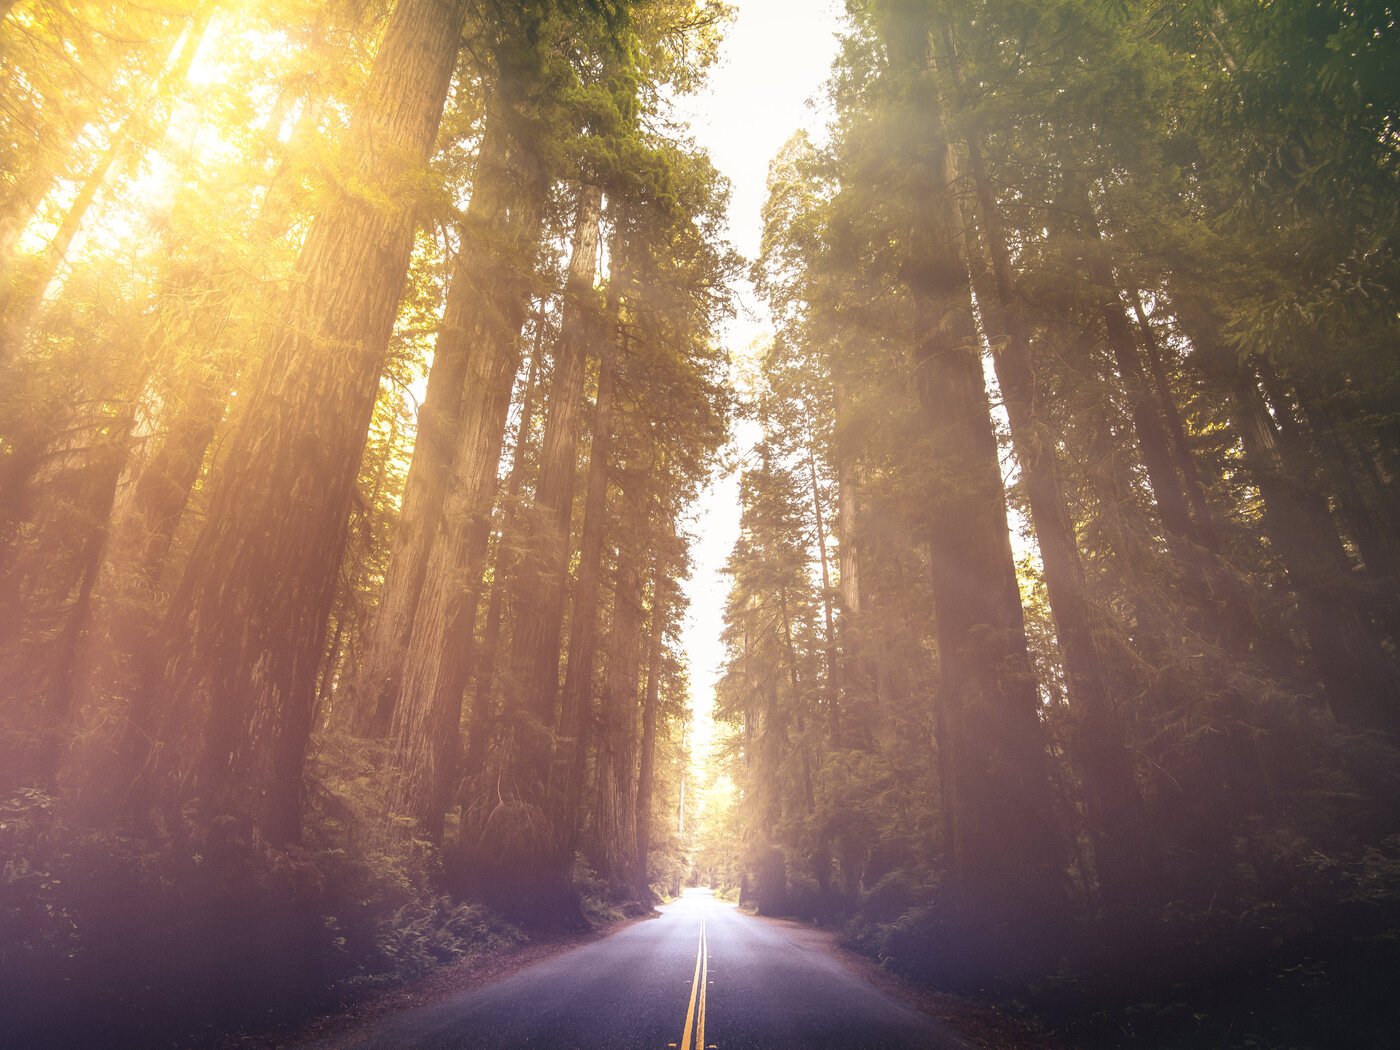 driving-through-red-woods-5k-by.jpg